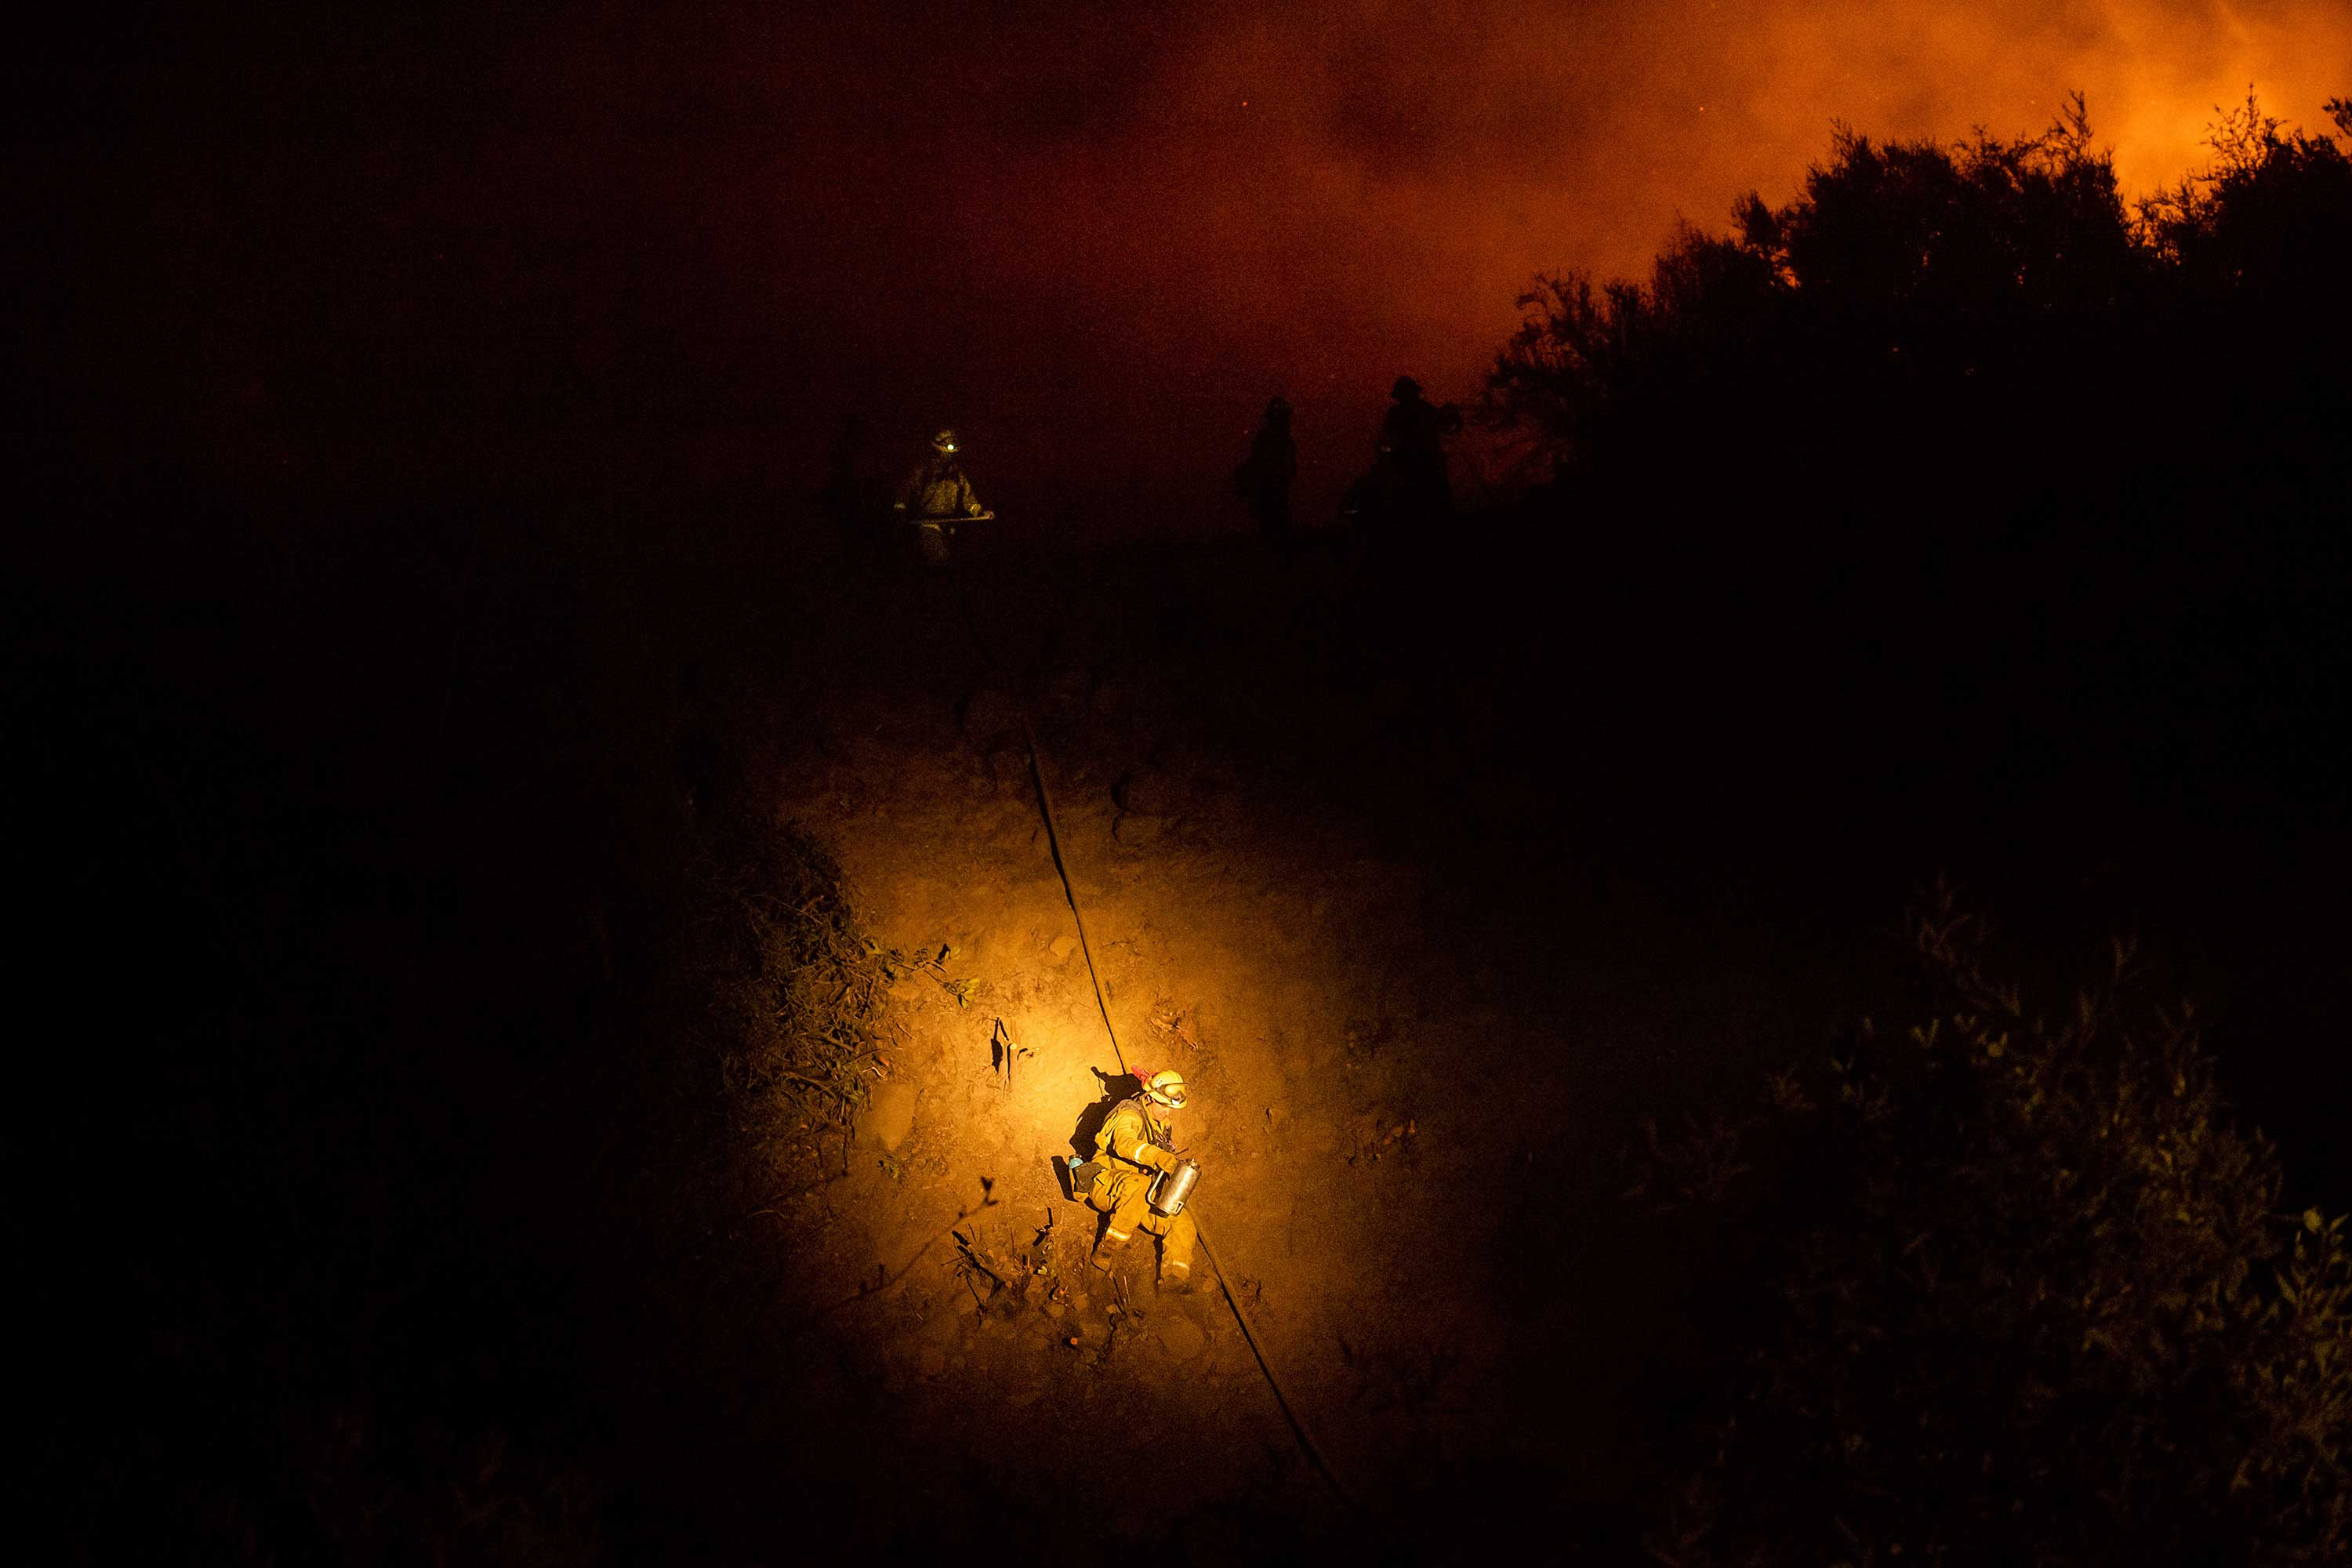 "<div class=""meta image-caption""><div class=""origin-logo origin-image none""><span>none</span></div><span class=""caption-text"">Firefighter Brandon Esquer makes his way down a hillside while battling the Ranch Fire, part of the Mendocino Complex Fire, on Tuesday, Aug. 7, 2018, near Ladoga, Calif. (Noah Berger/AP Photo)</span></div>"